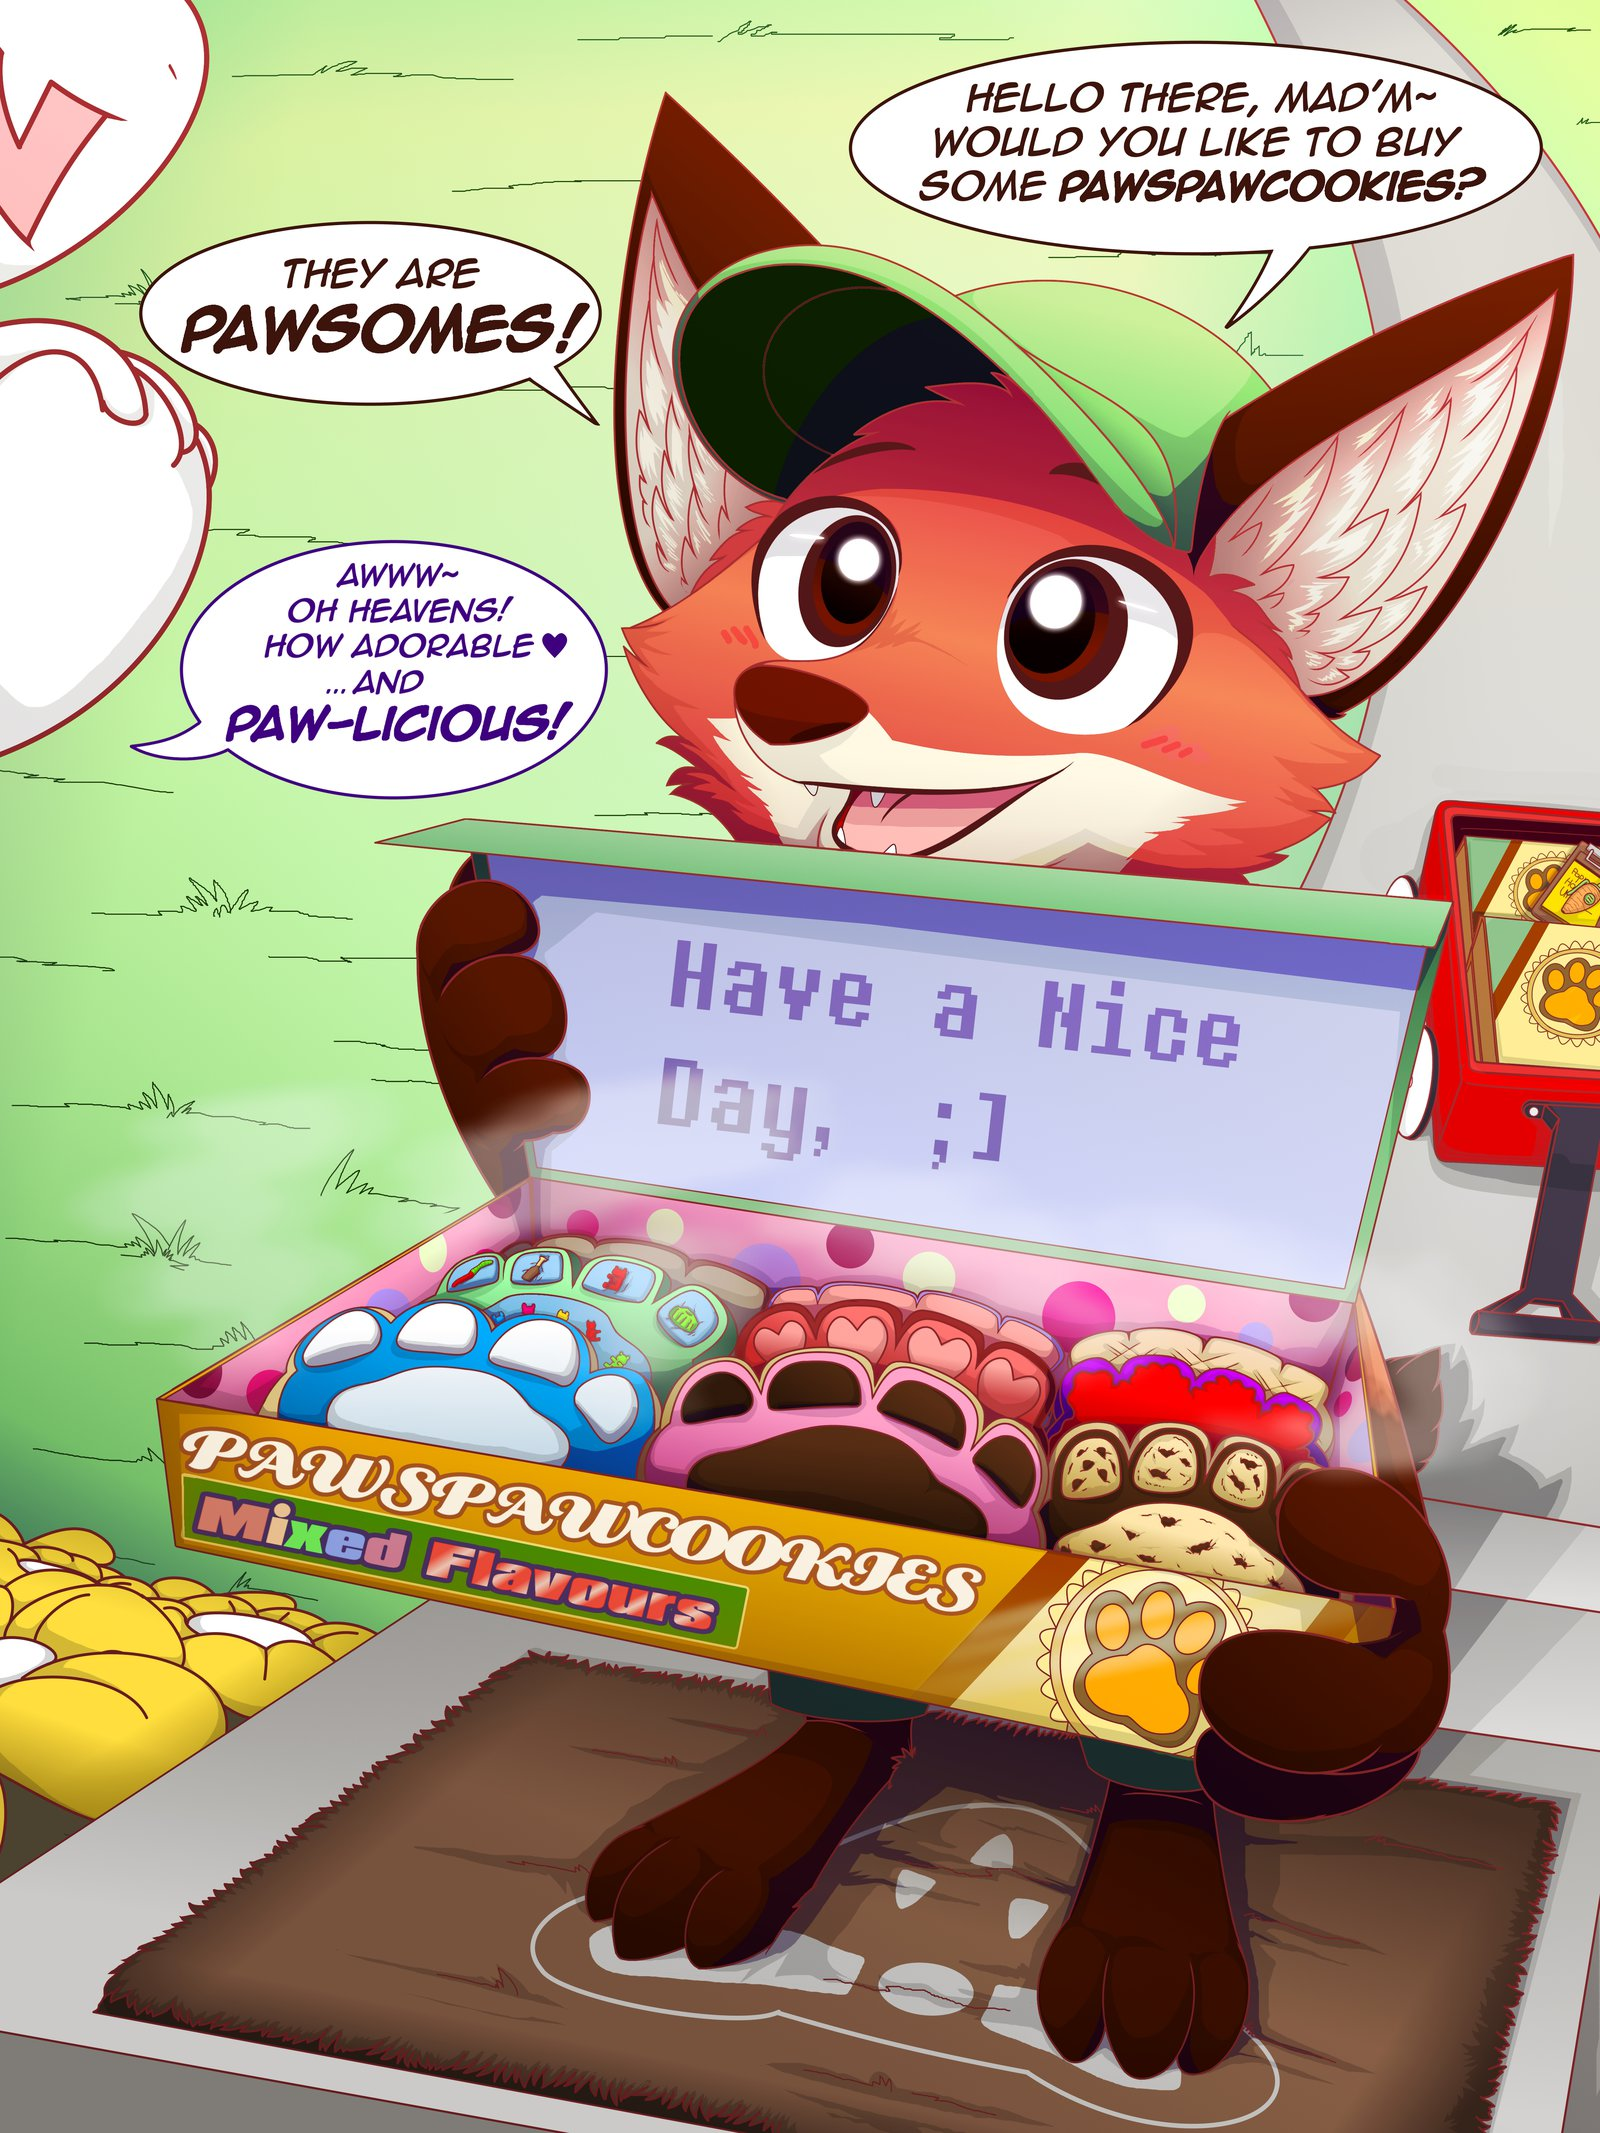 HELLO THEREu0027 ㅆADu0027M~ WOULD YOU LIKE TO BUY SOME PAWSPAWCOOKIESP THEY